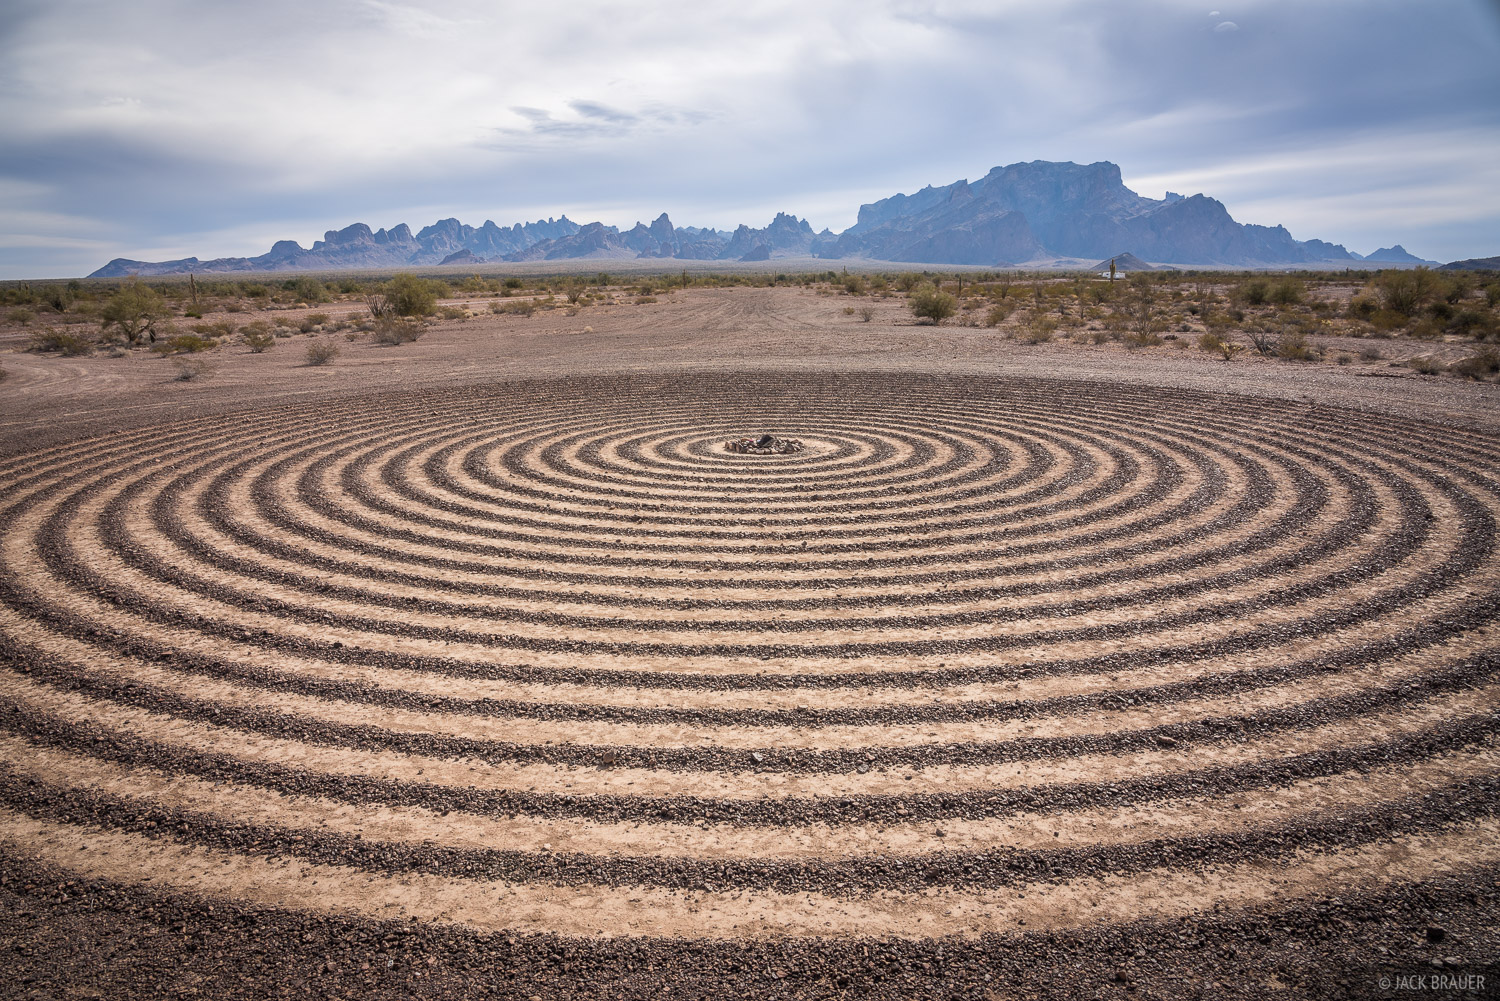 Arizona, Kofa National Wildlife Refuge, Signal Peak, Spiral Labyrinth, Kofa Mountains, photo